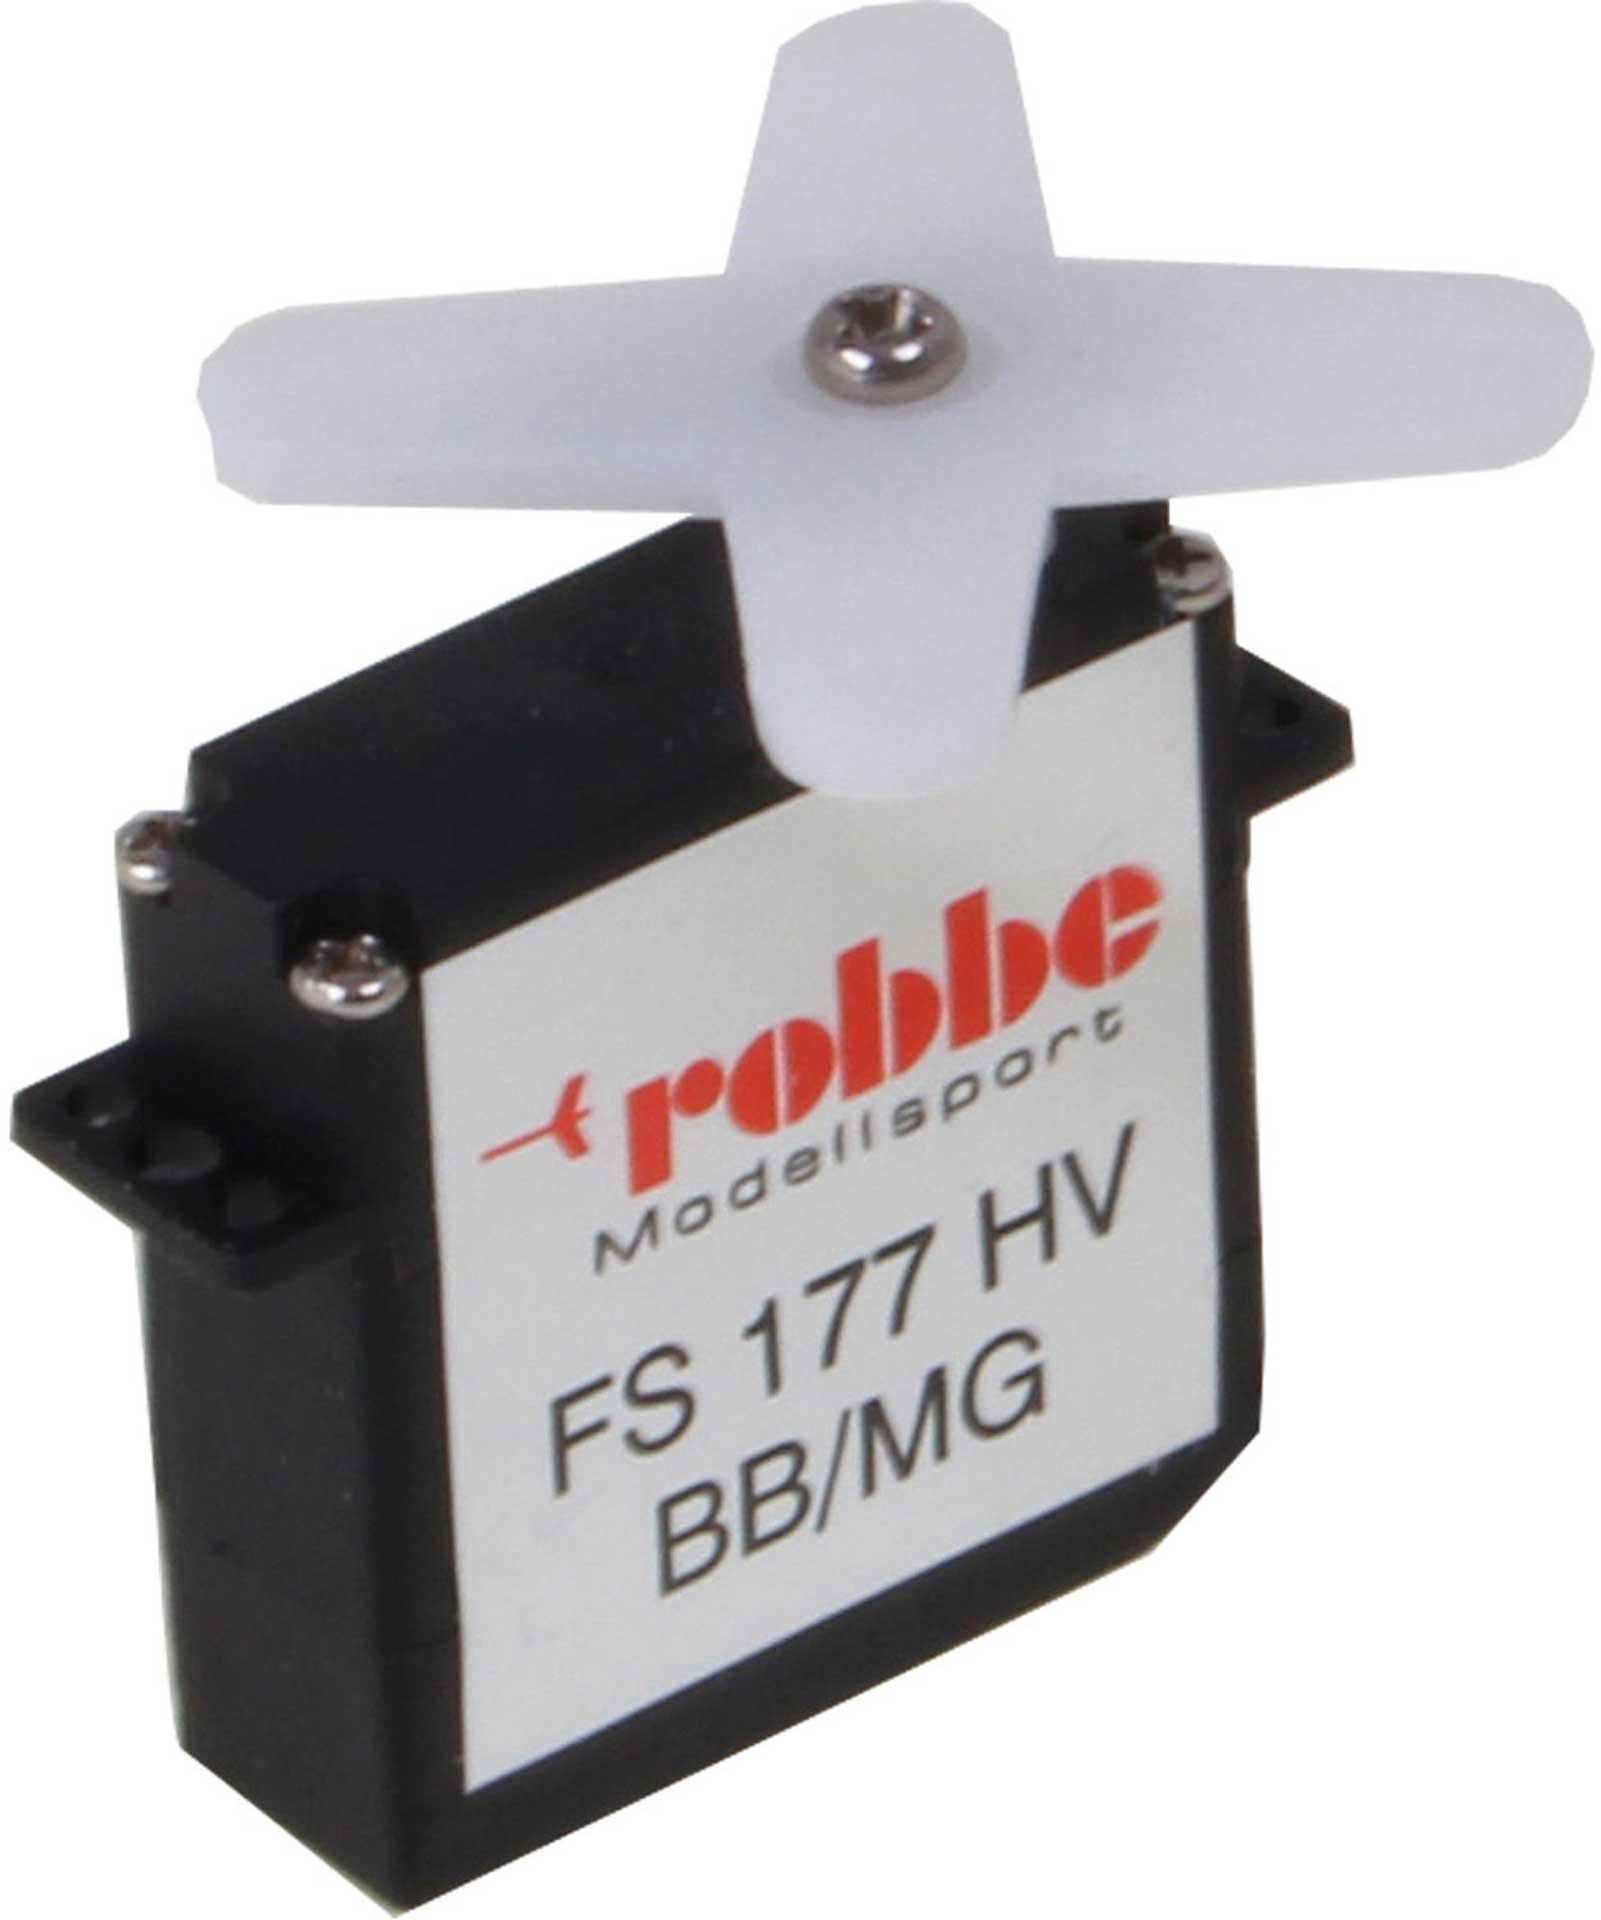 ROBBE FS 177 BB MG HV DIGITAL SERVO